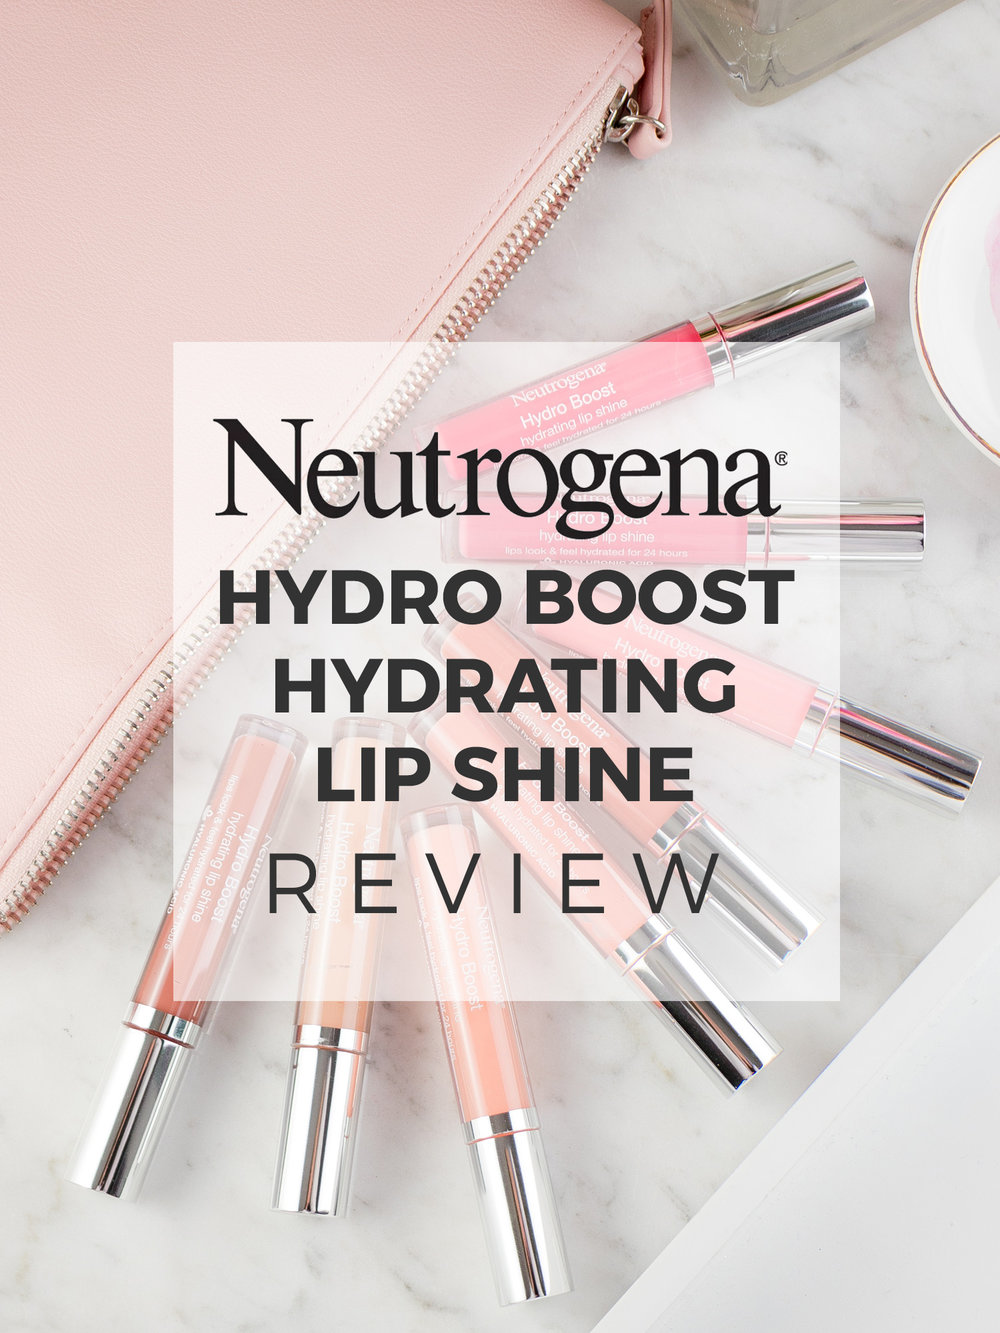 Neutrogena Hydro Boost Hydrating Lip Shine Review